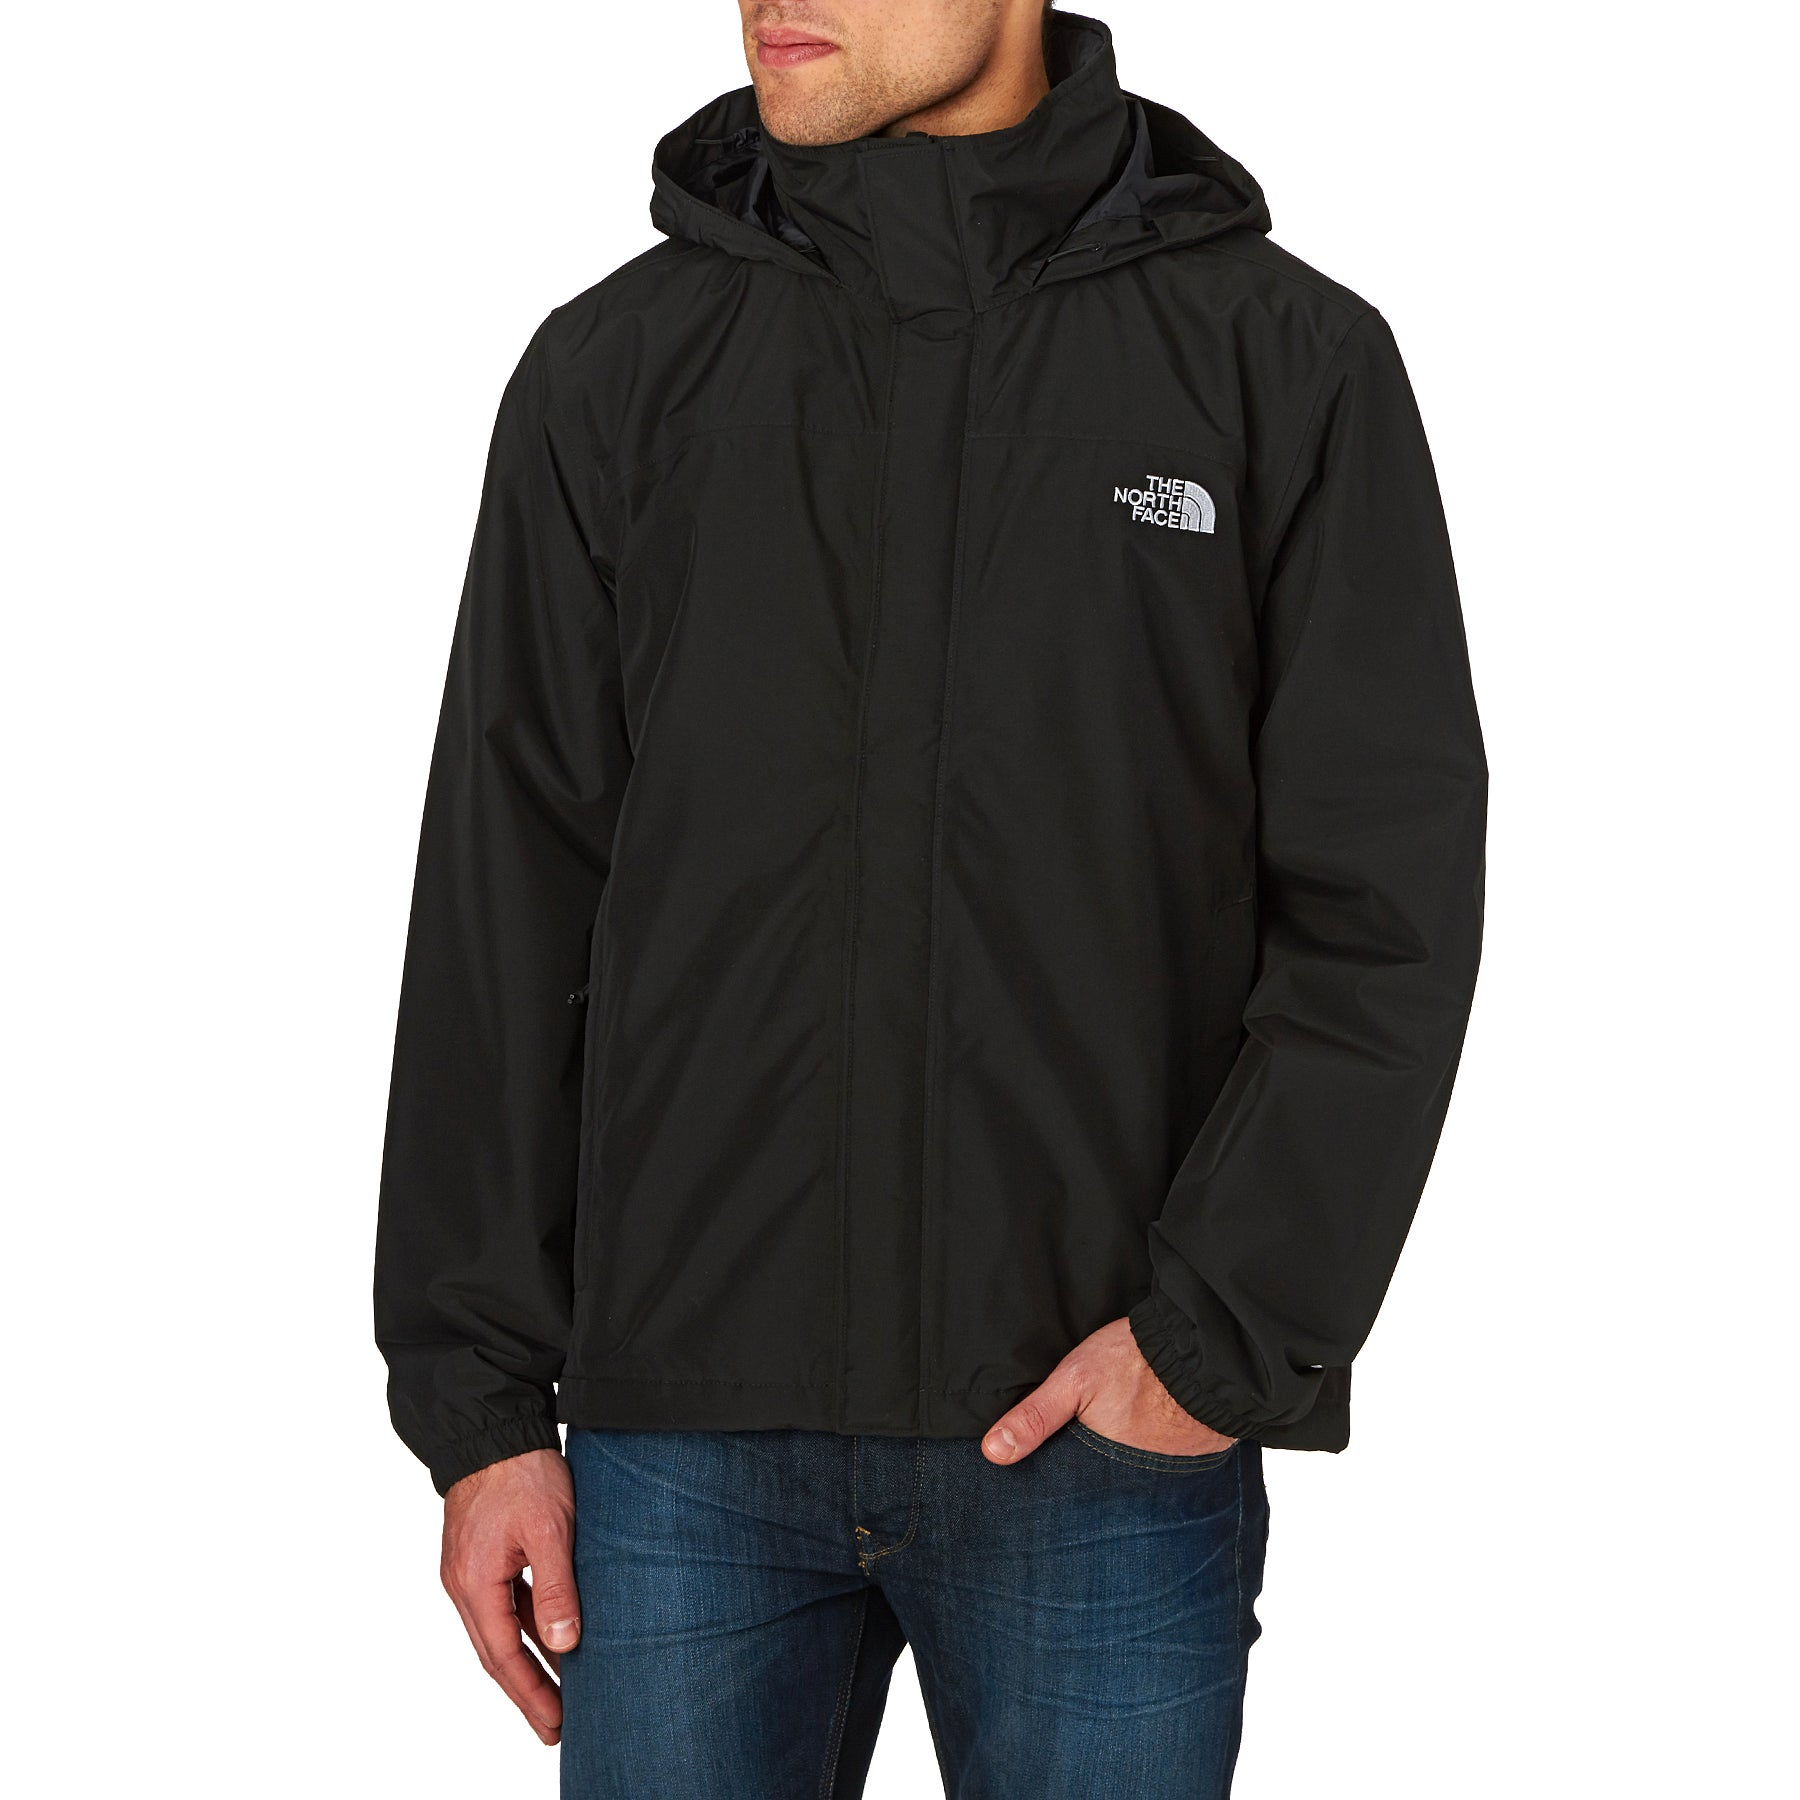 5a645c5c3 North Face Insulated Resolve Jacket - Free Delivery options on All ...